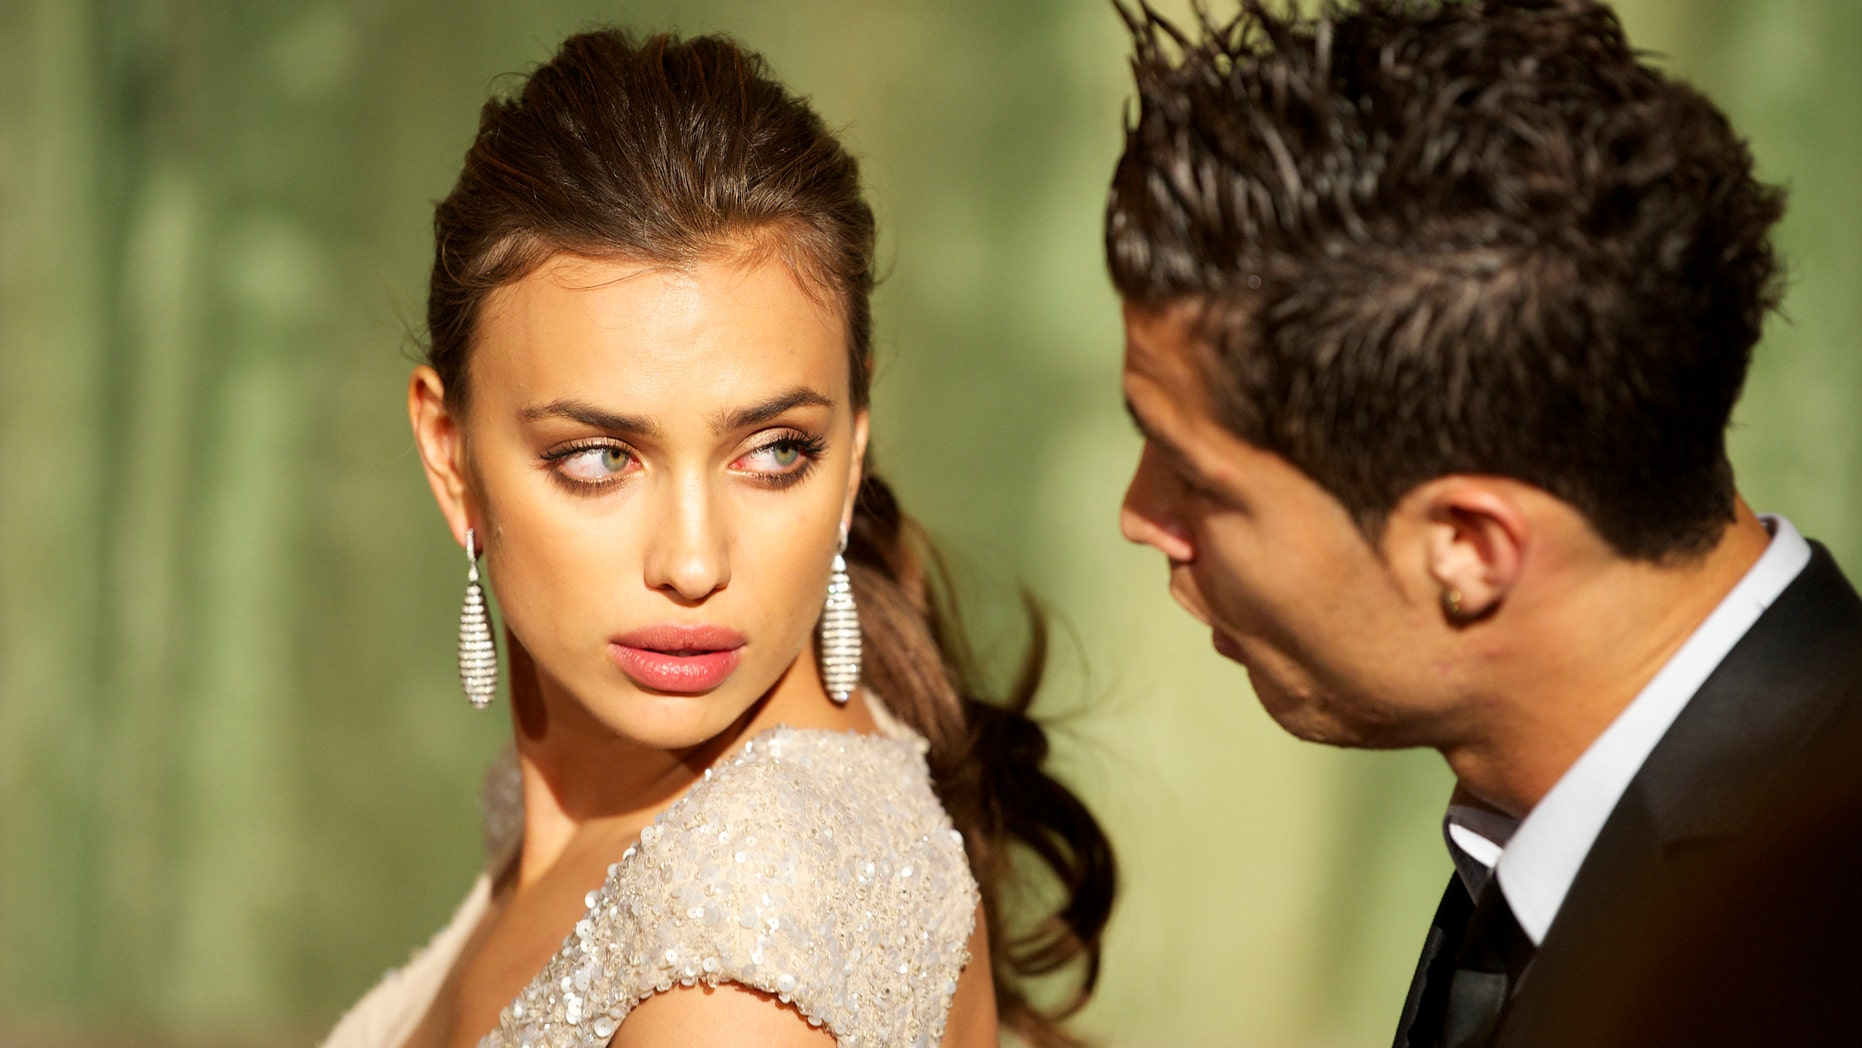 MADRID, SPAIN - NOVEMBER 17:  Model Irina Shayk and Real Madrid player Cristiano Ronaldo attend Marie Claire Prix de la Moda awards 2011 at French Embassy on November 17, 2011 in Madrid, Spain.  (Photo by Carlos Alvarez/Getty Images)